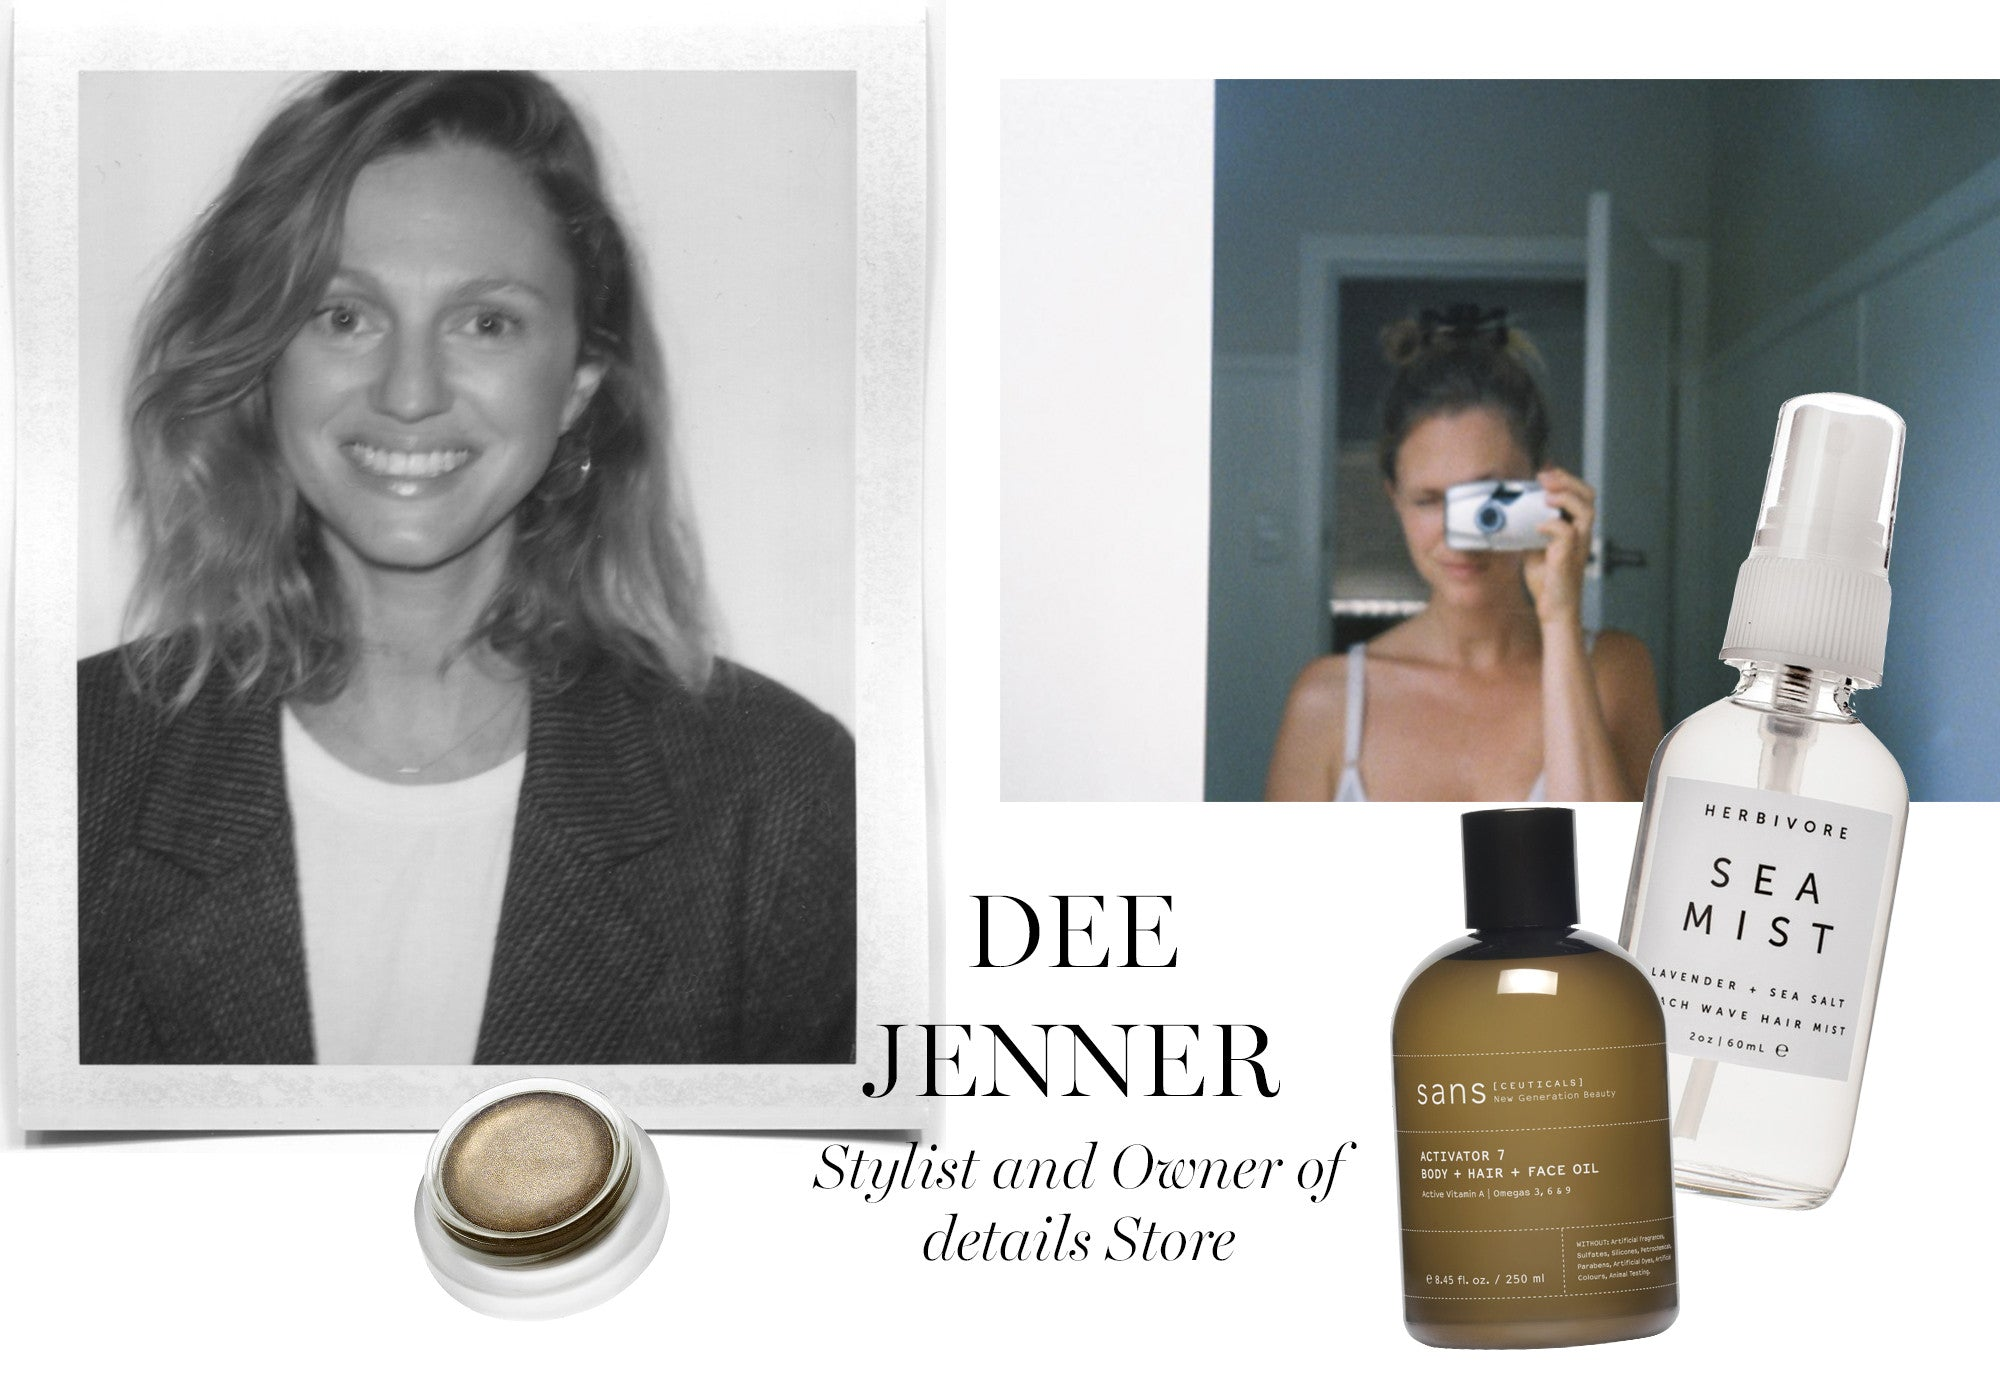 Dee Jenner Stylist and owner of details Store